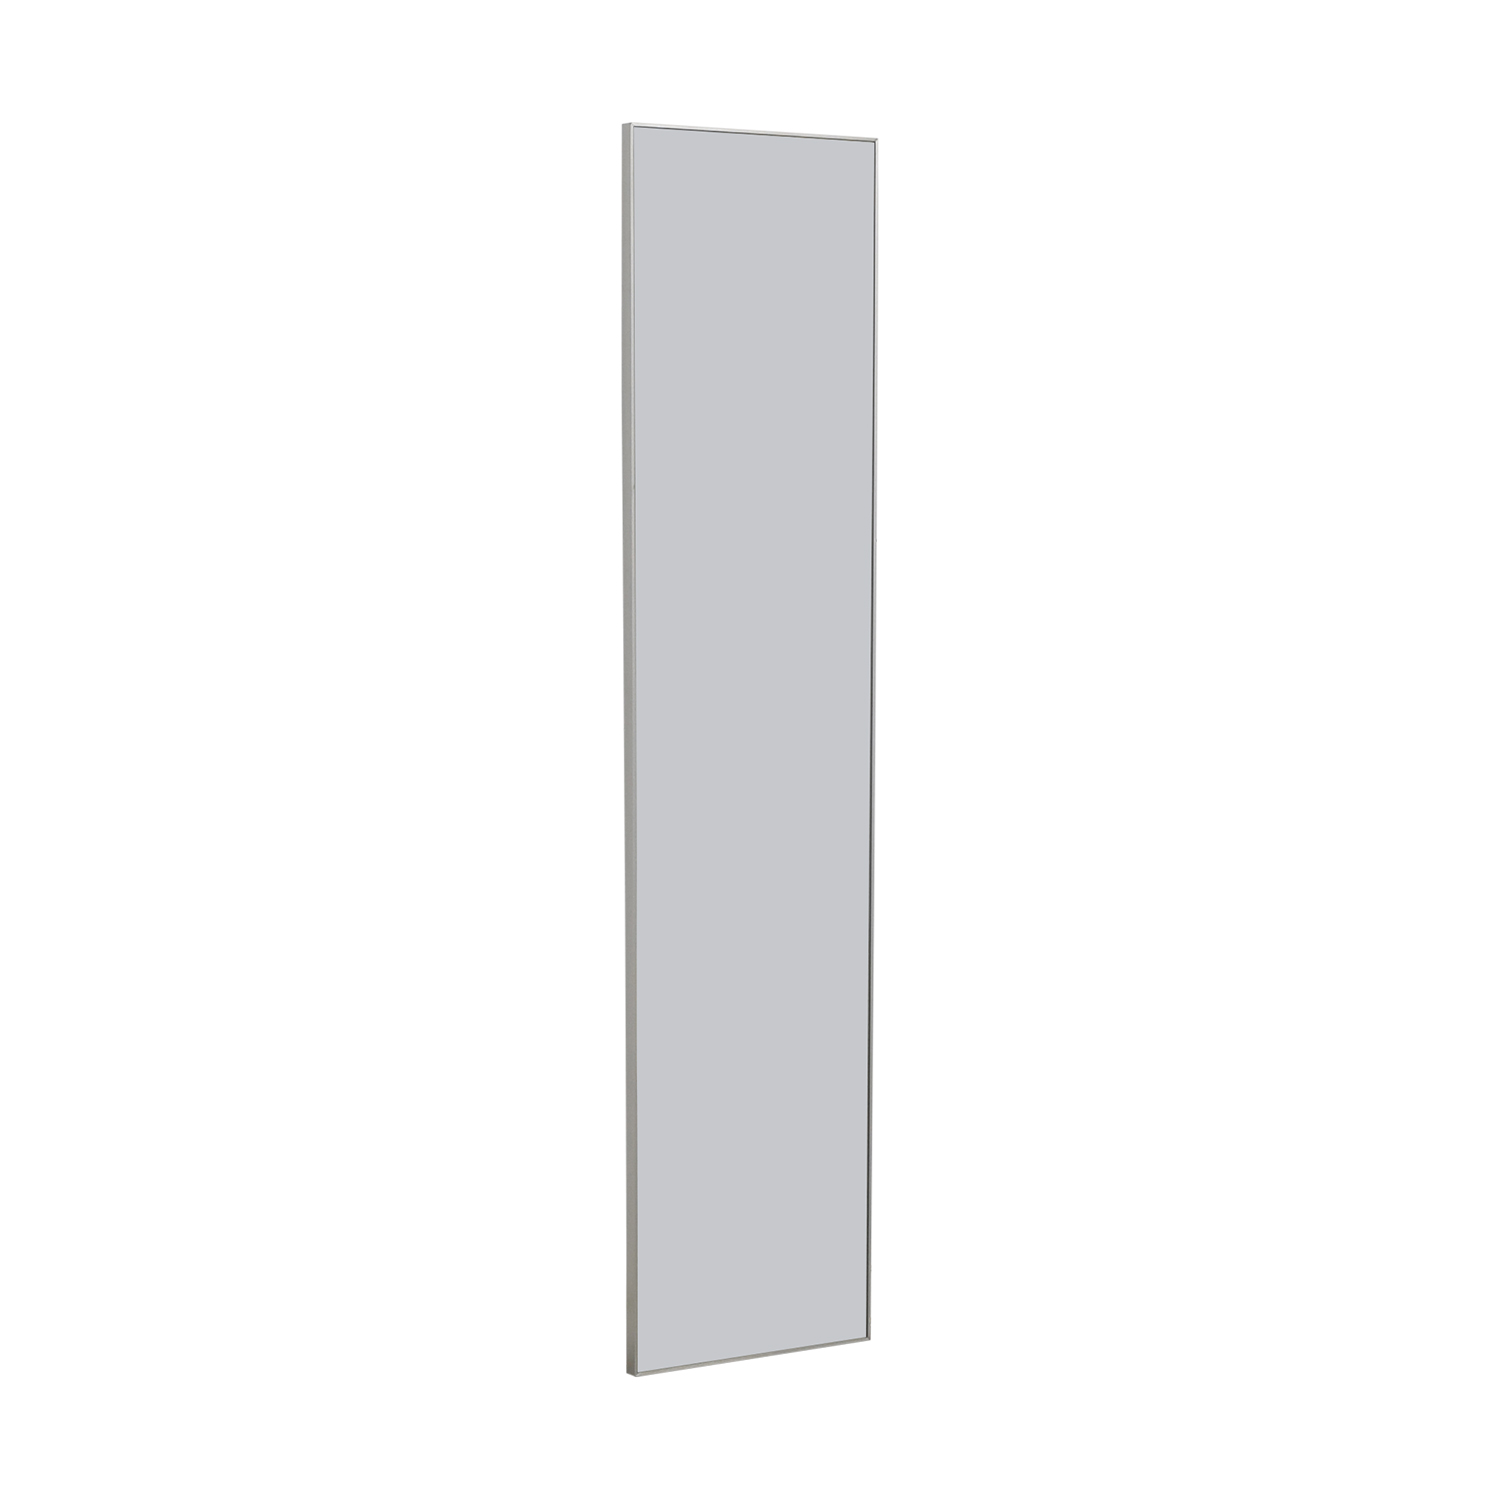 Crate & Barrel Floor Mirror / Mirrors